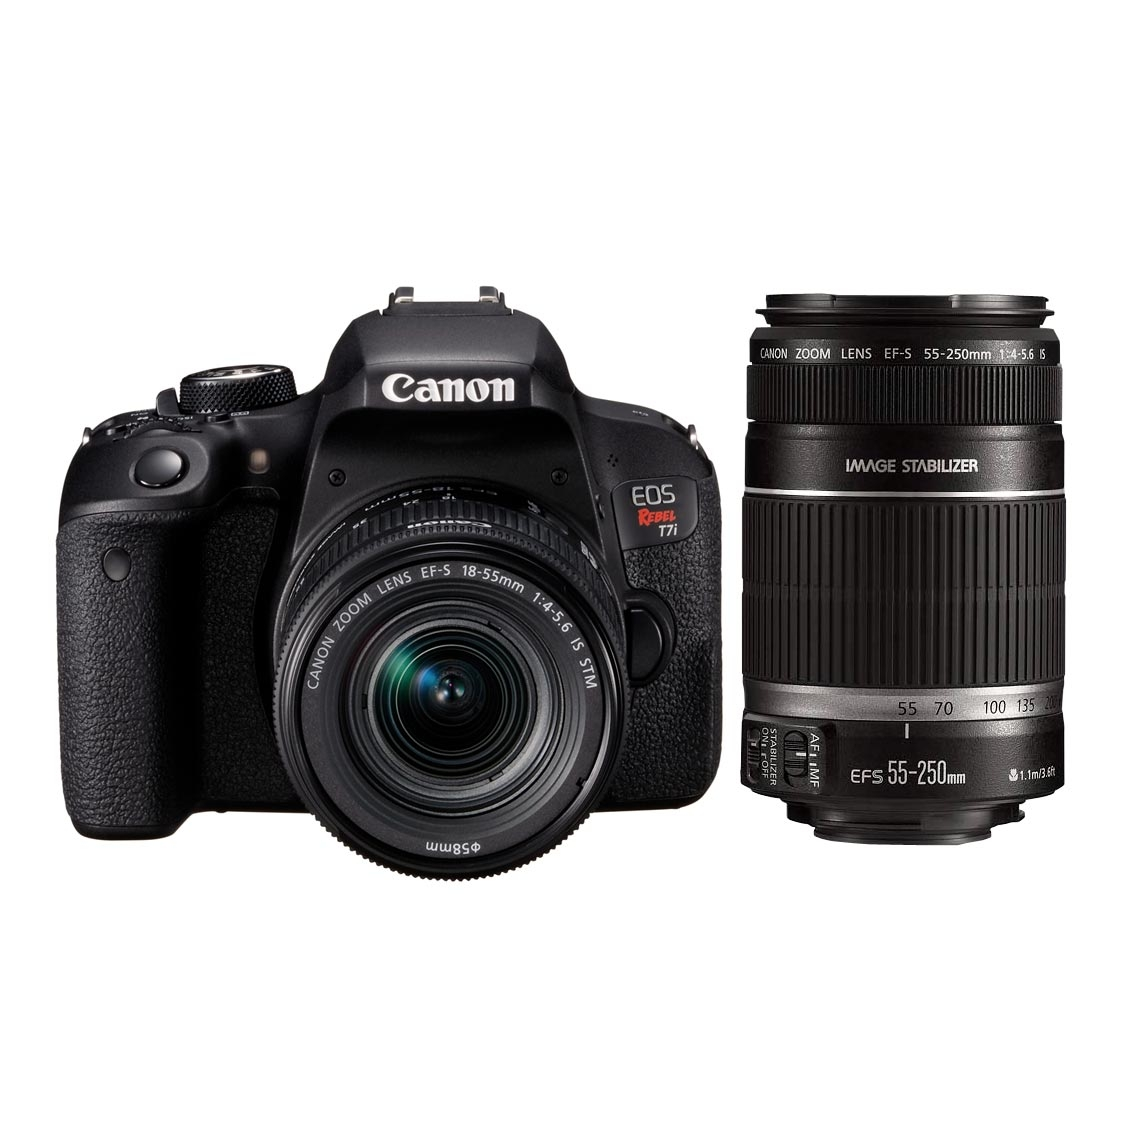 Canon Rebel T7i DSLR with 18-55mm IS STM and 55-250mm IS STM Lenses